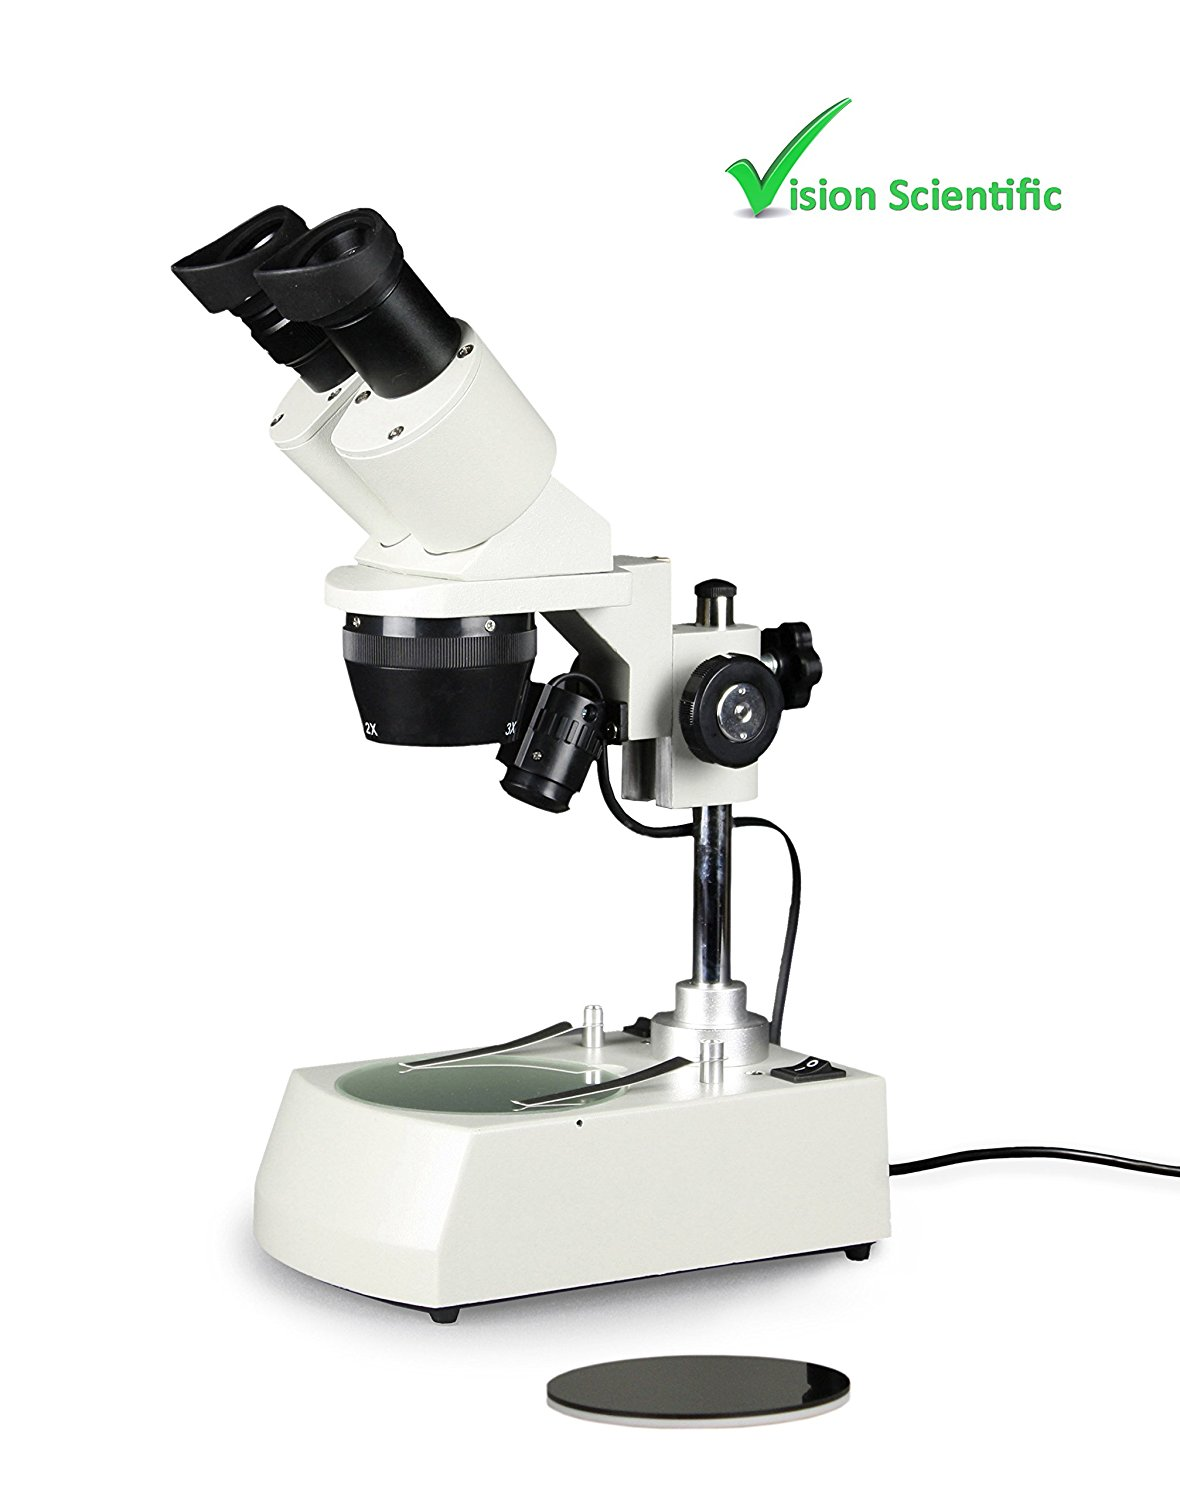 Vision Scientific VMS0002-LD-234 Tri-Power Binocular Stereo Microscope, 2X, 3X ,4X Objective, Paired 10X WF Eyepiece, 20X, 30X, 40X Magnification, Top and Bottom LED Illumination, Post-Mounted Stand